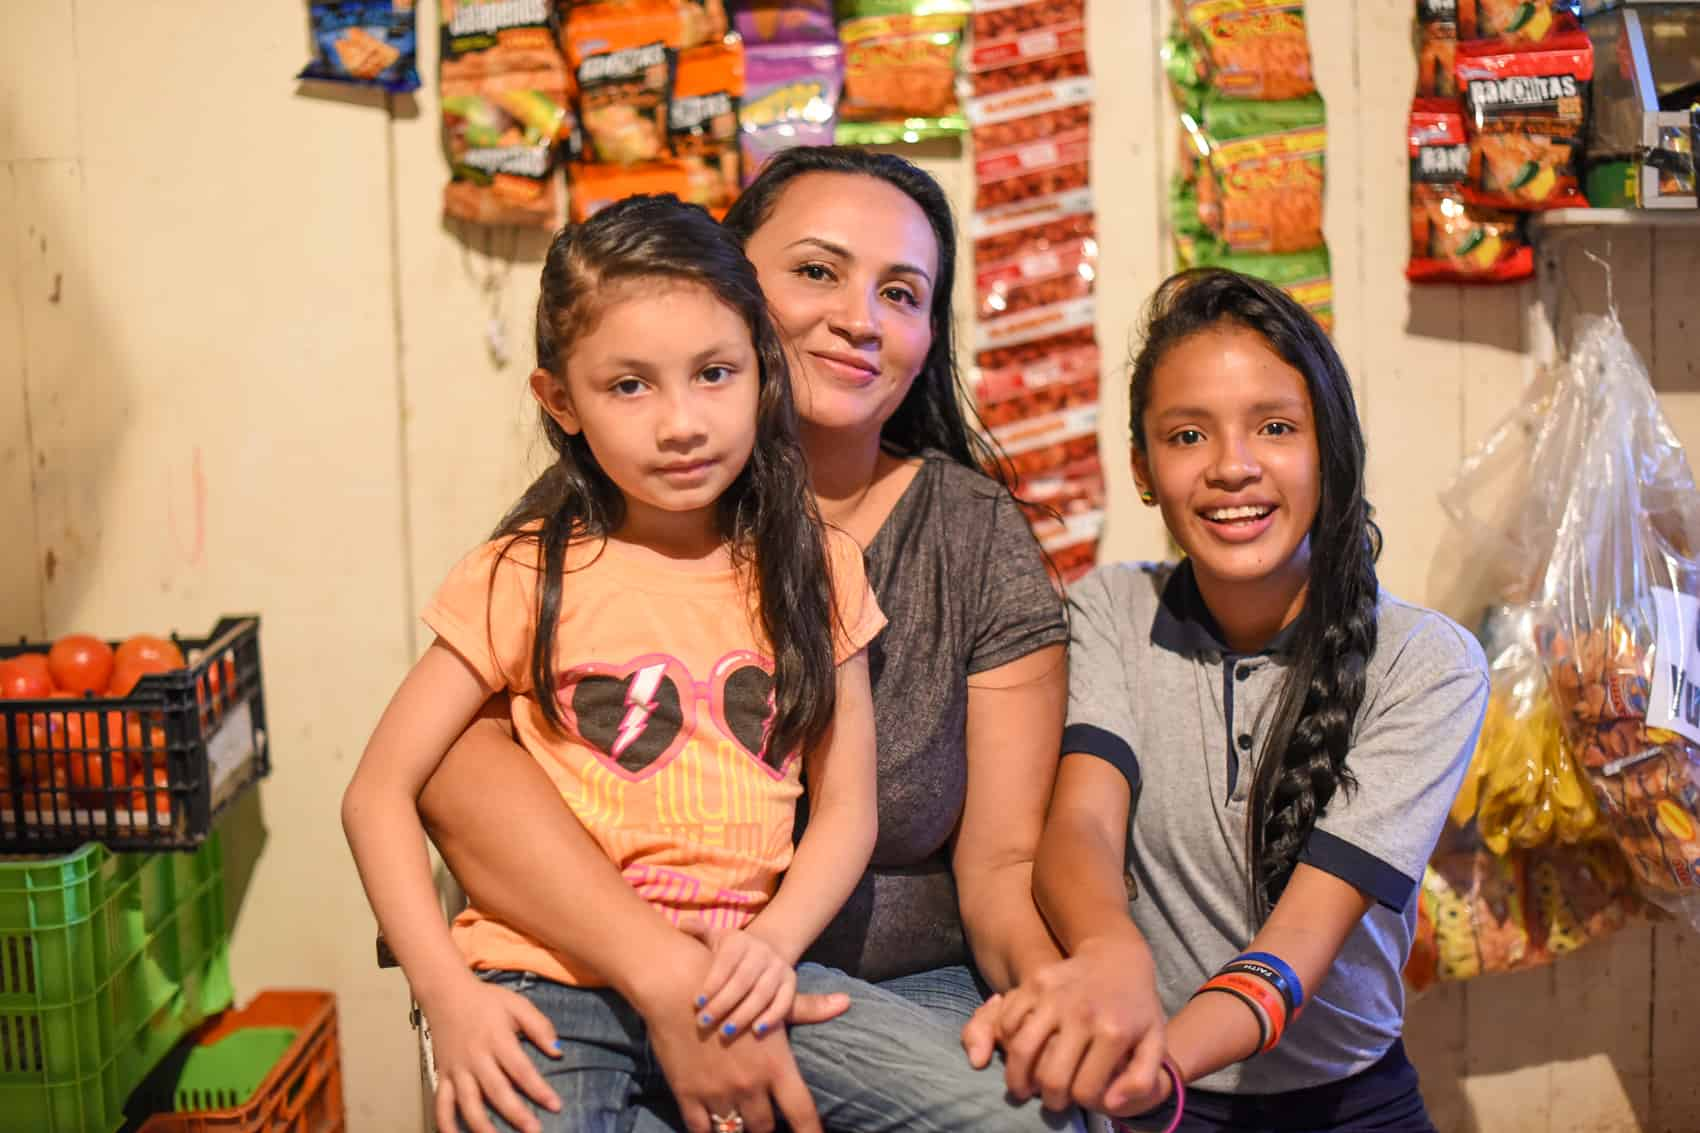 Zeneyda Flores with two of her four daughters, Liath (left) and Libby (right), in their home in Triángulo de la Solidaridad, August 13, 2015.